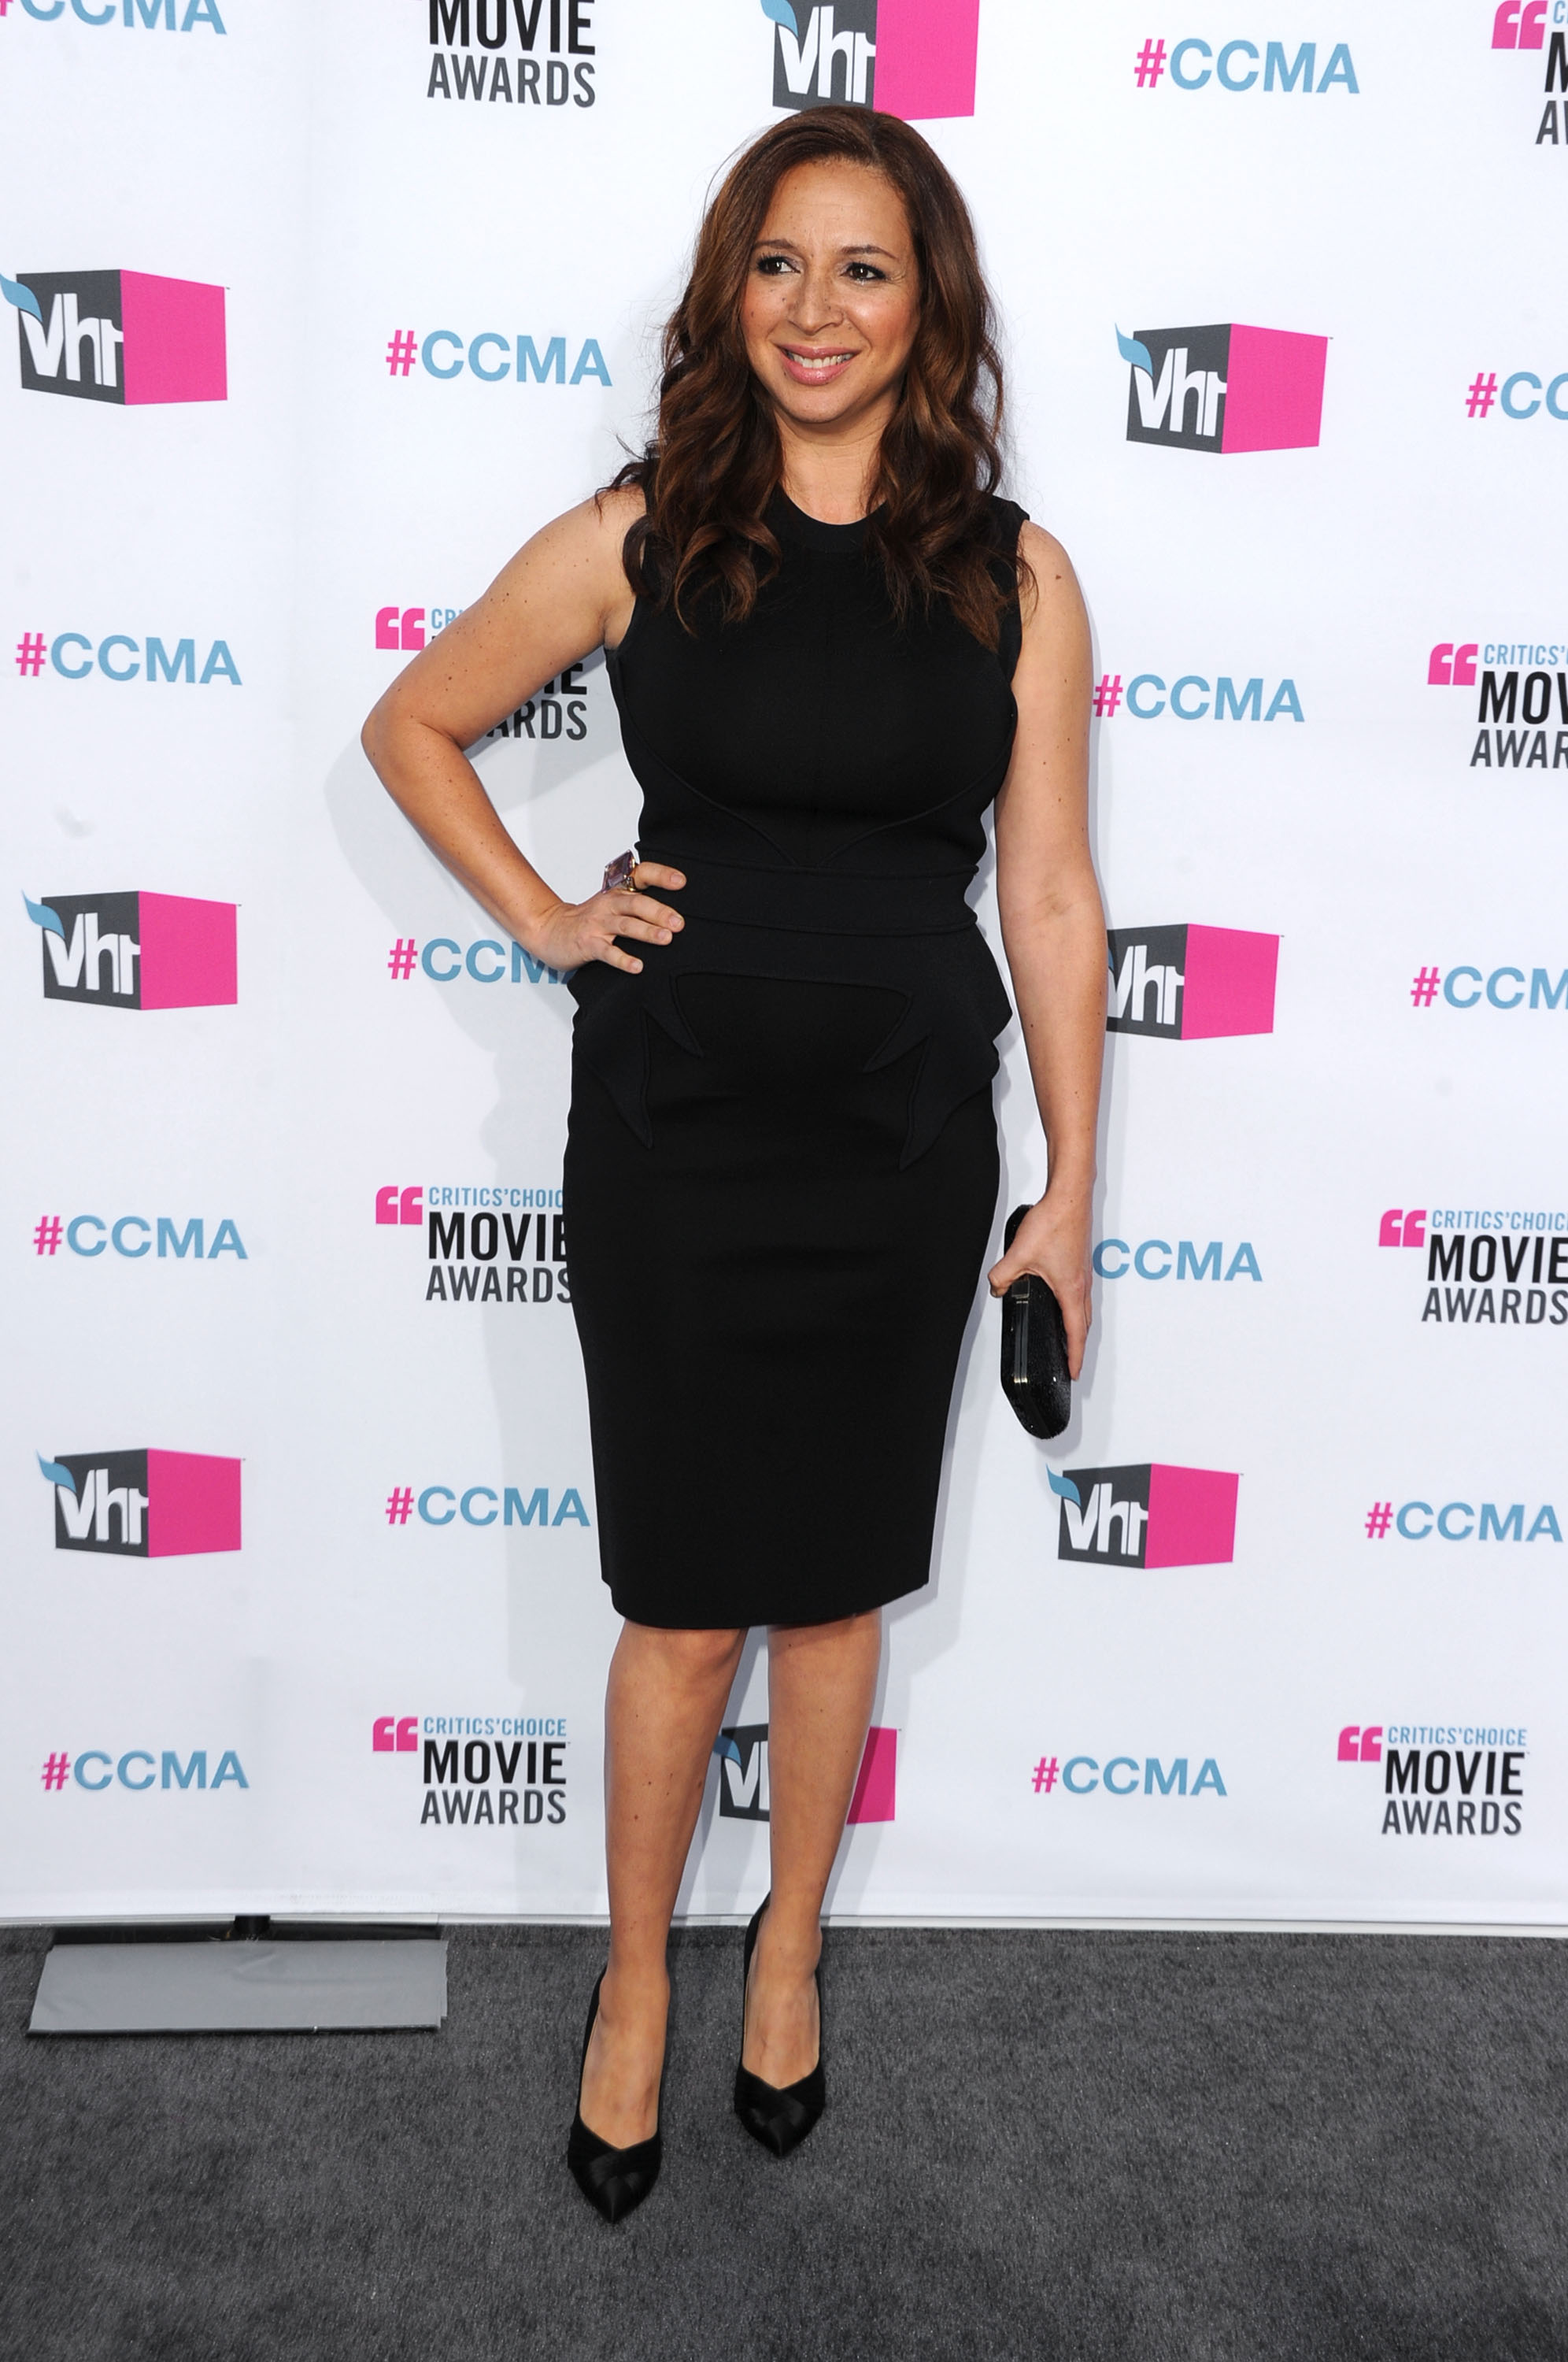 Maya Rudolph on the gray carpet at the 2012 Critcs' Choice Movie Awards.